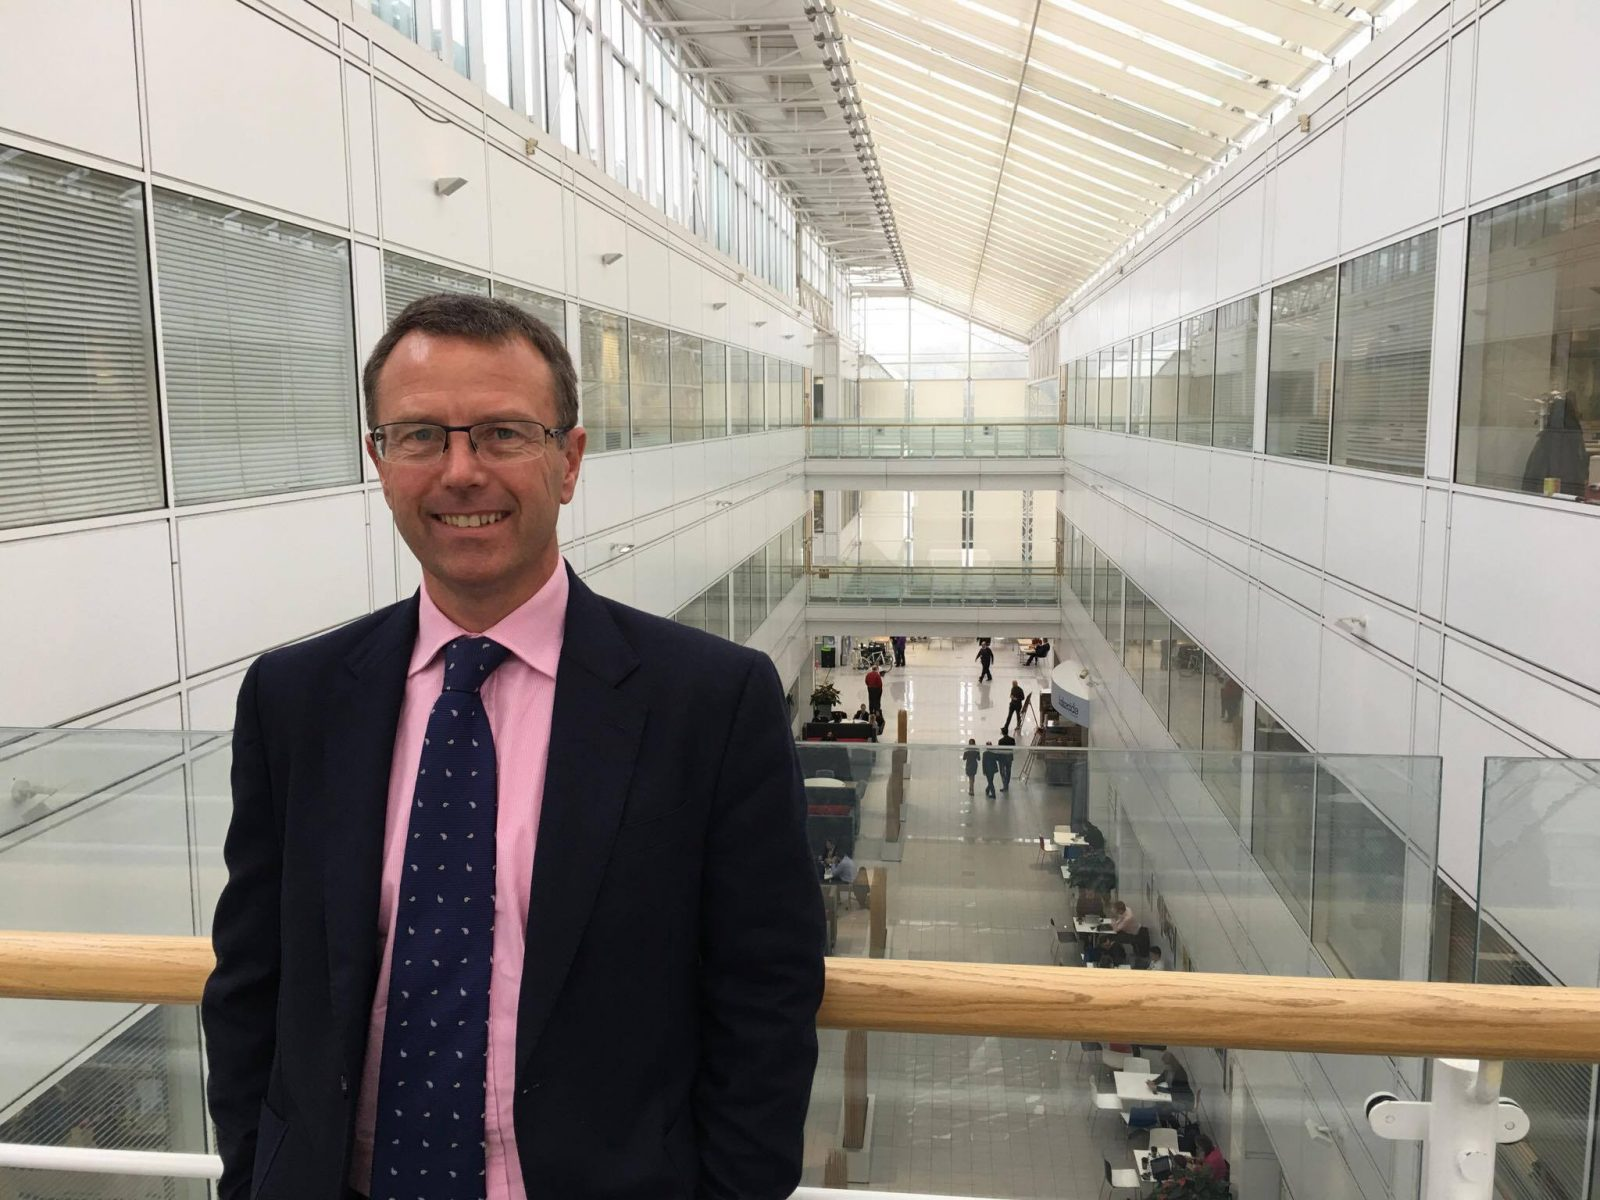 Interview with Graeme Hood: Chair of Nationwide's Military Network